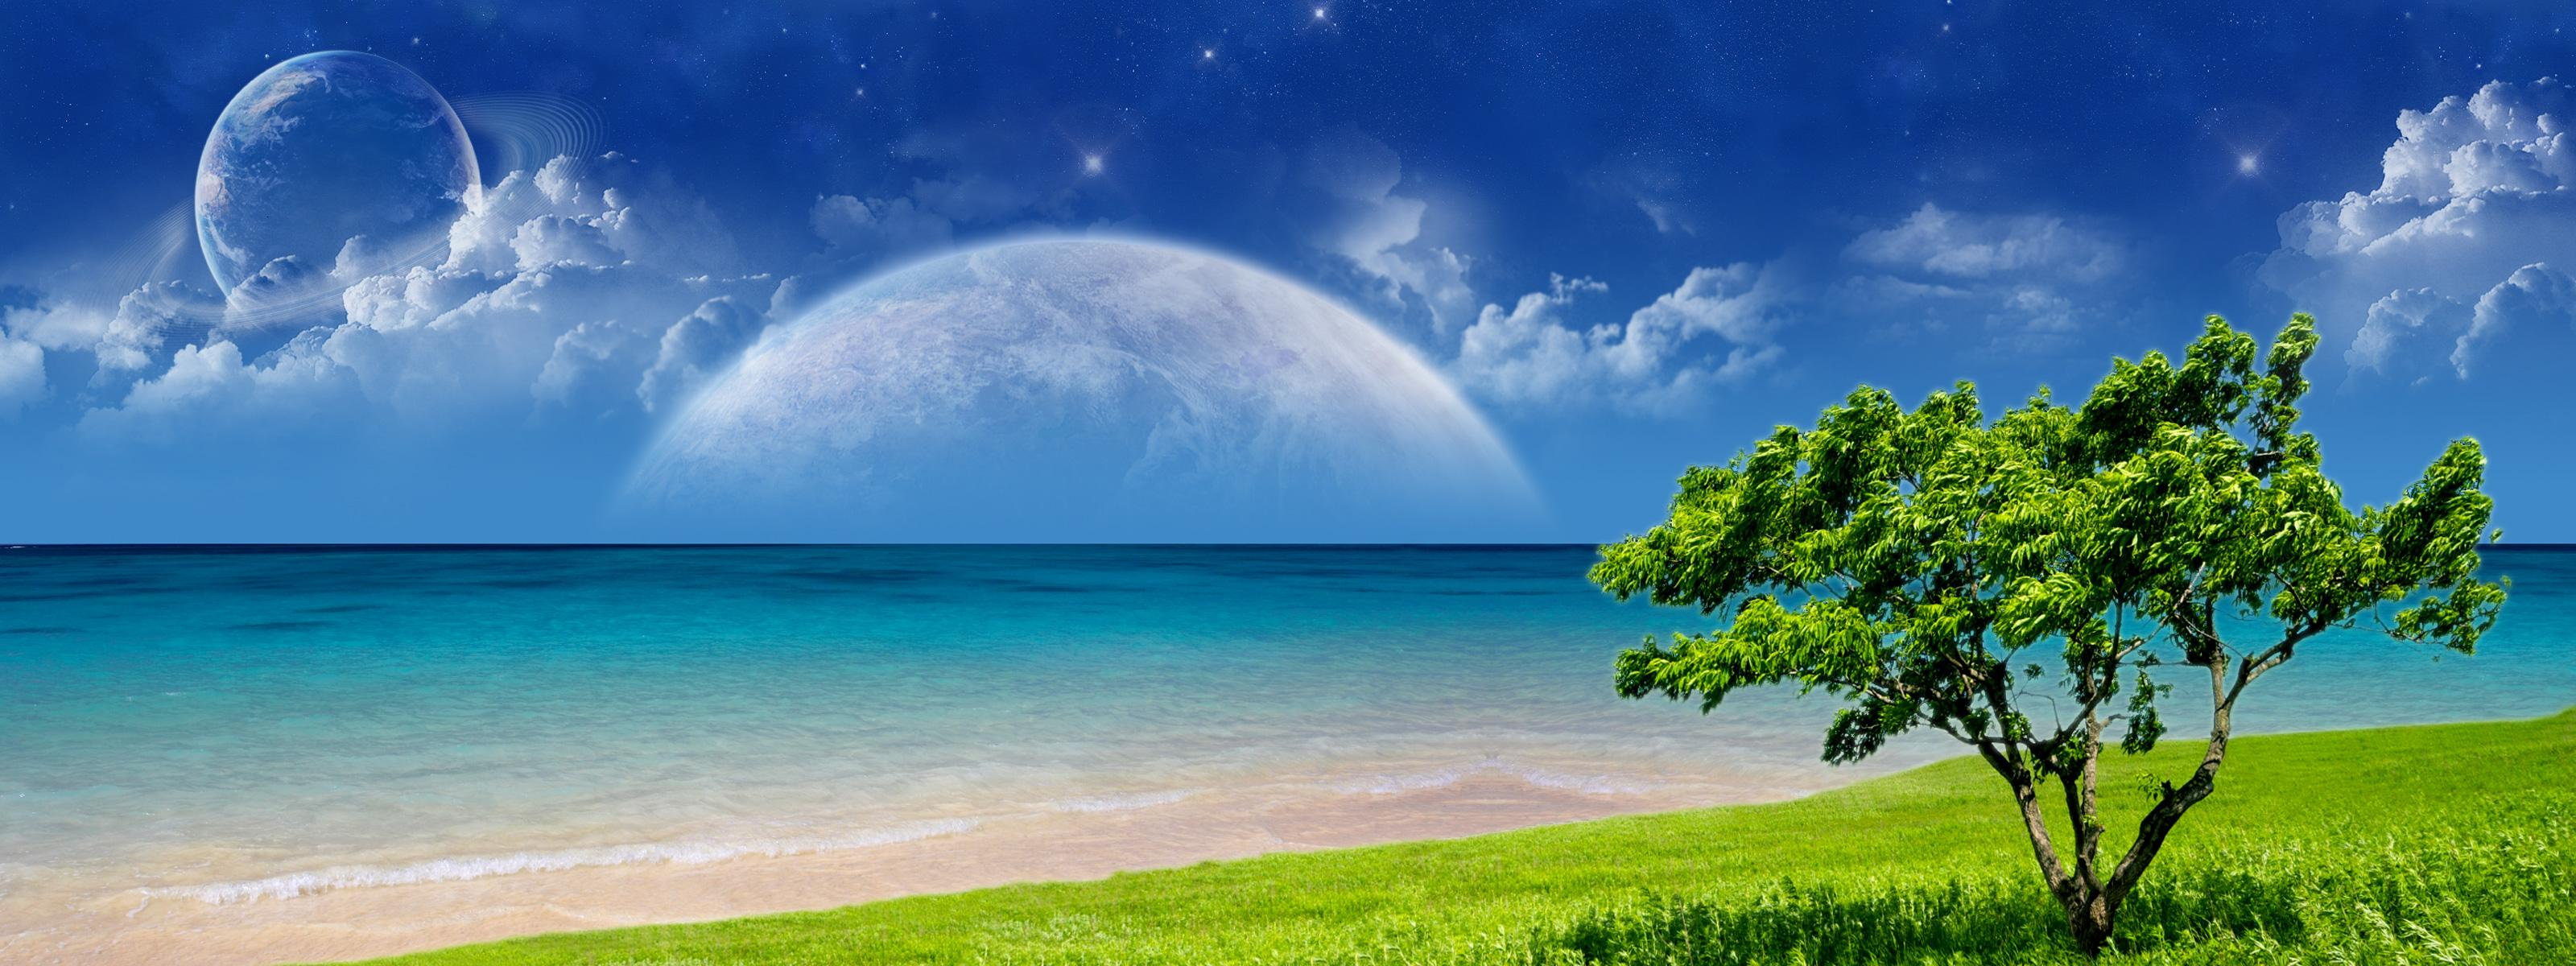 multi, Monitor, Dual, Screen, Cg, Digital, Art, Manip, Ocean, Sea, Sky, Planets, Sci, Fi, Mood, Clouds Wallpaper